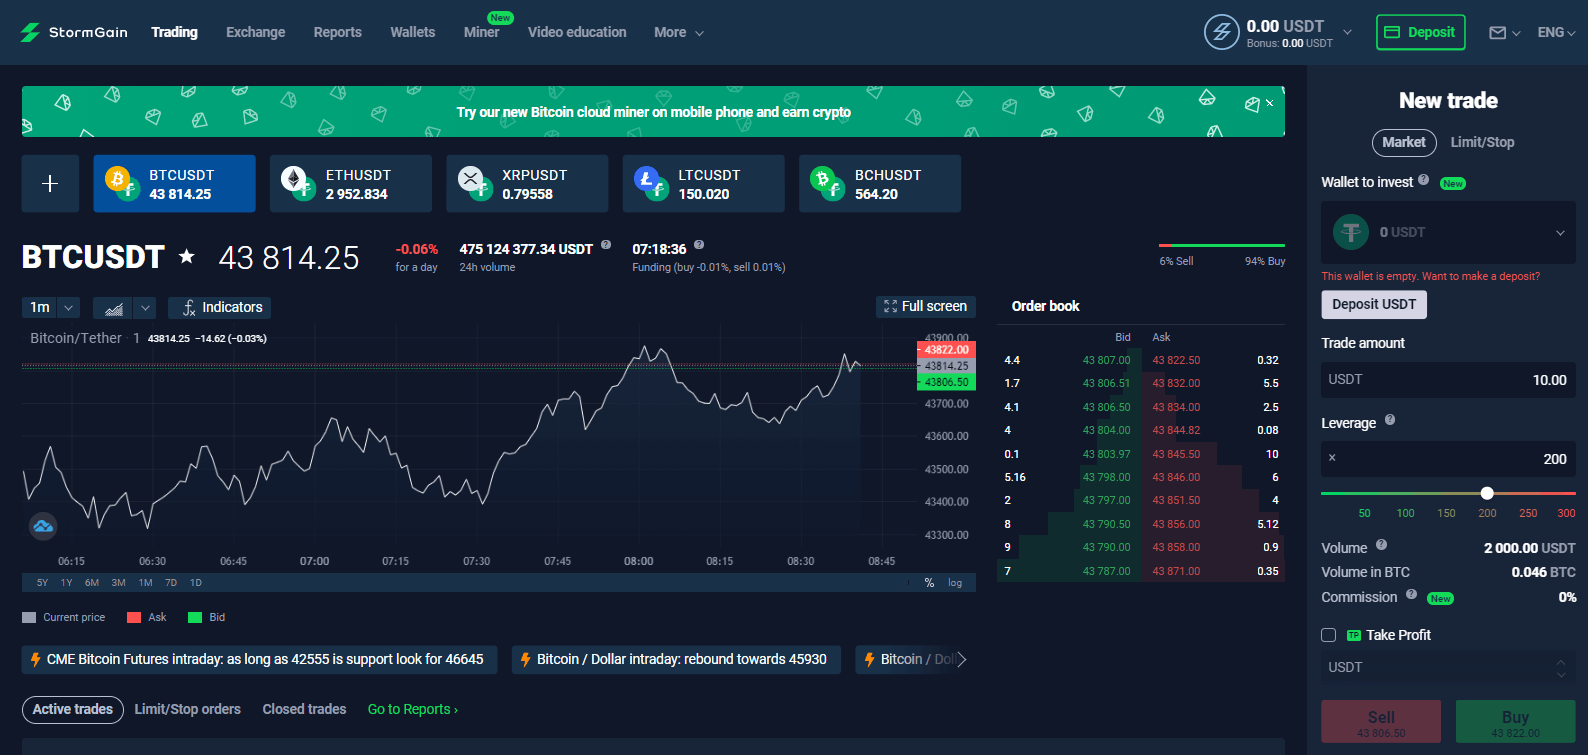 How to Open a Demo Account on StormGain